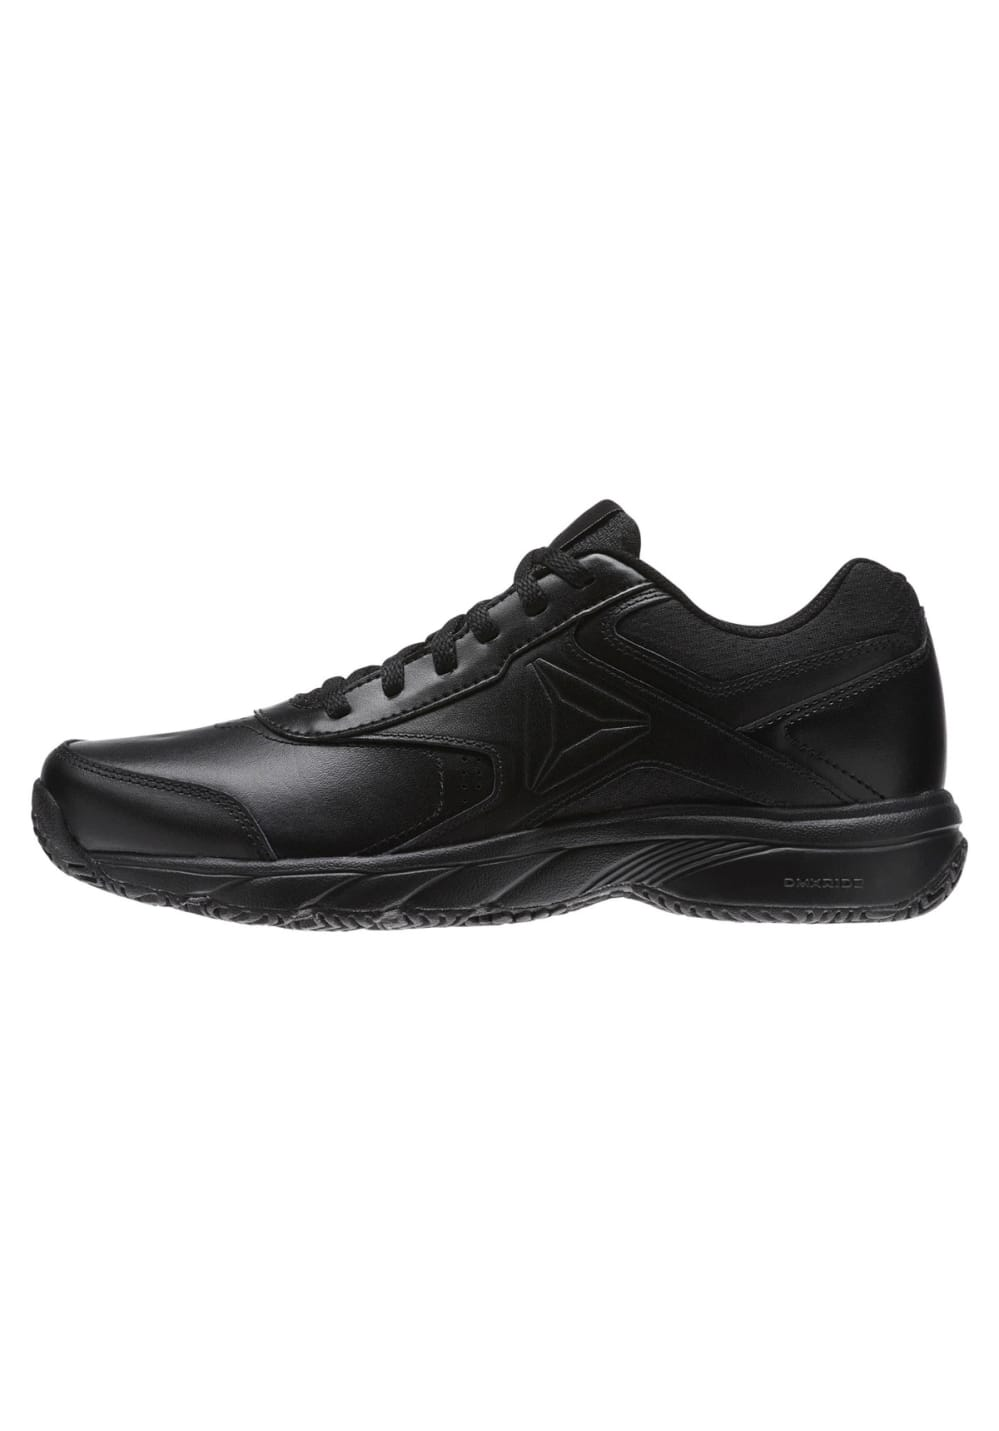 4ffbcb20550ab ... Reebok Work N Cushion 3.0 - Walking shoes for Women - Black. Back to  Overview. 1  2  3. Previous